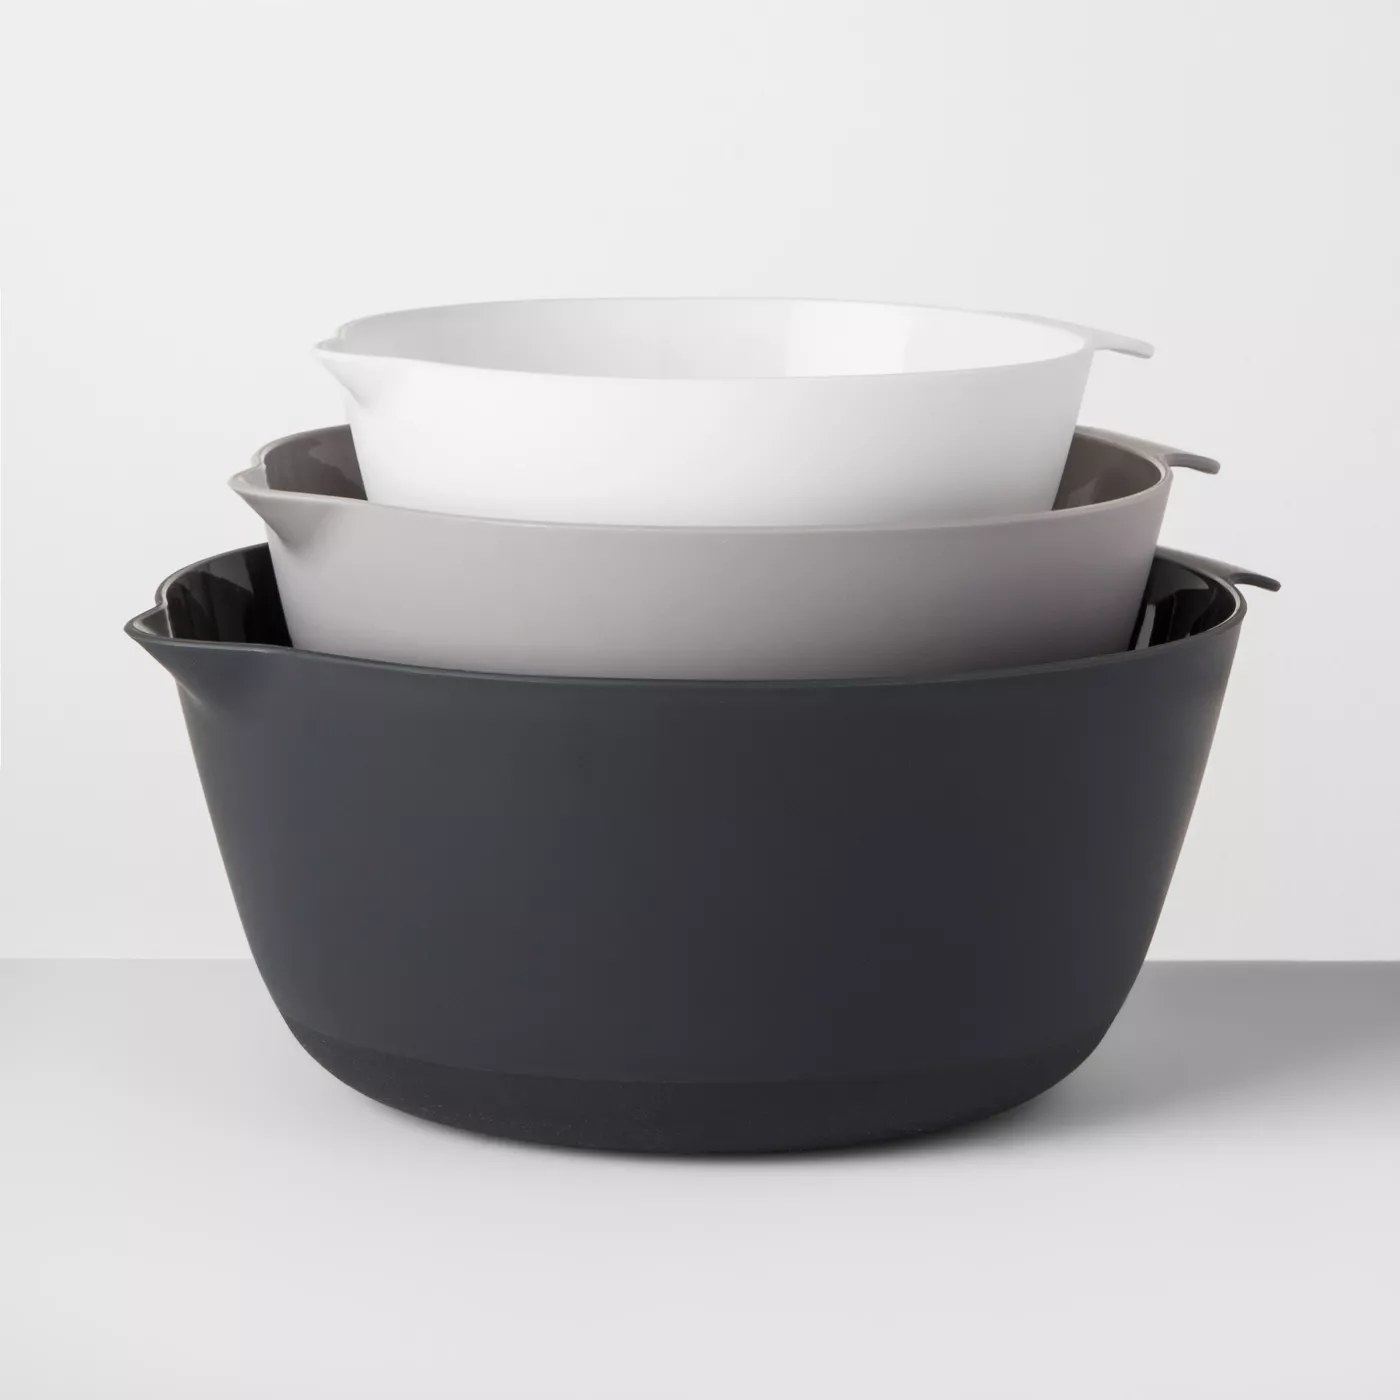 The bowls stacked on top of each other